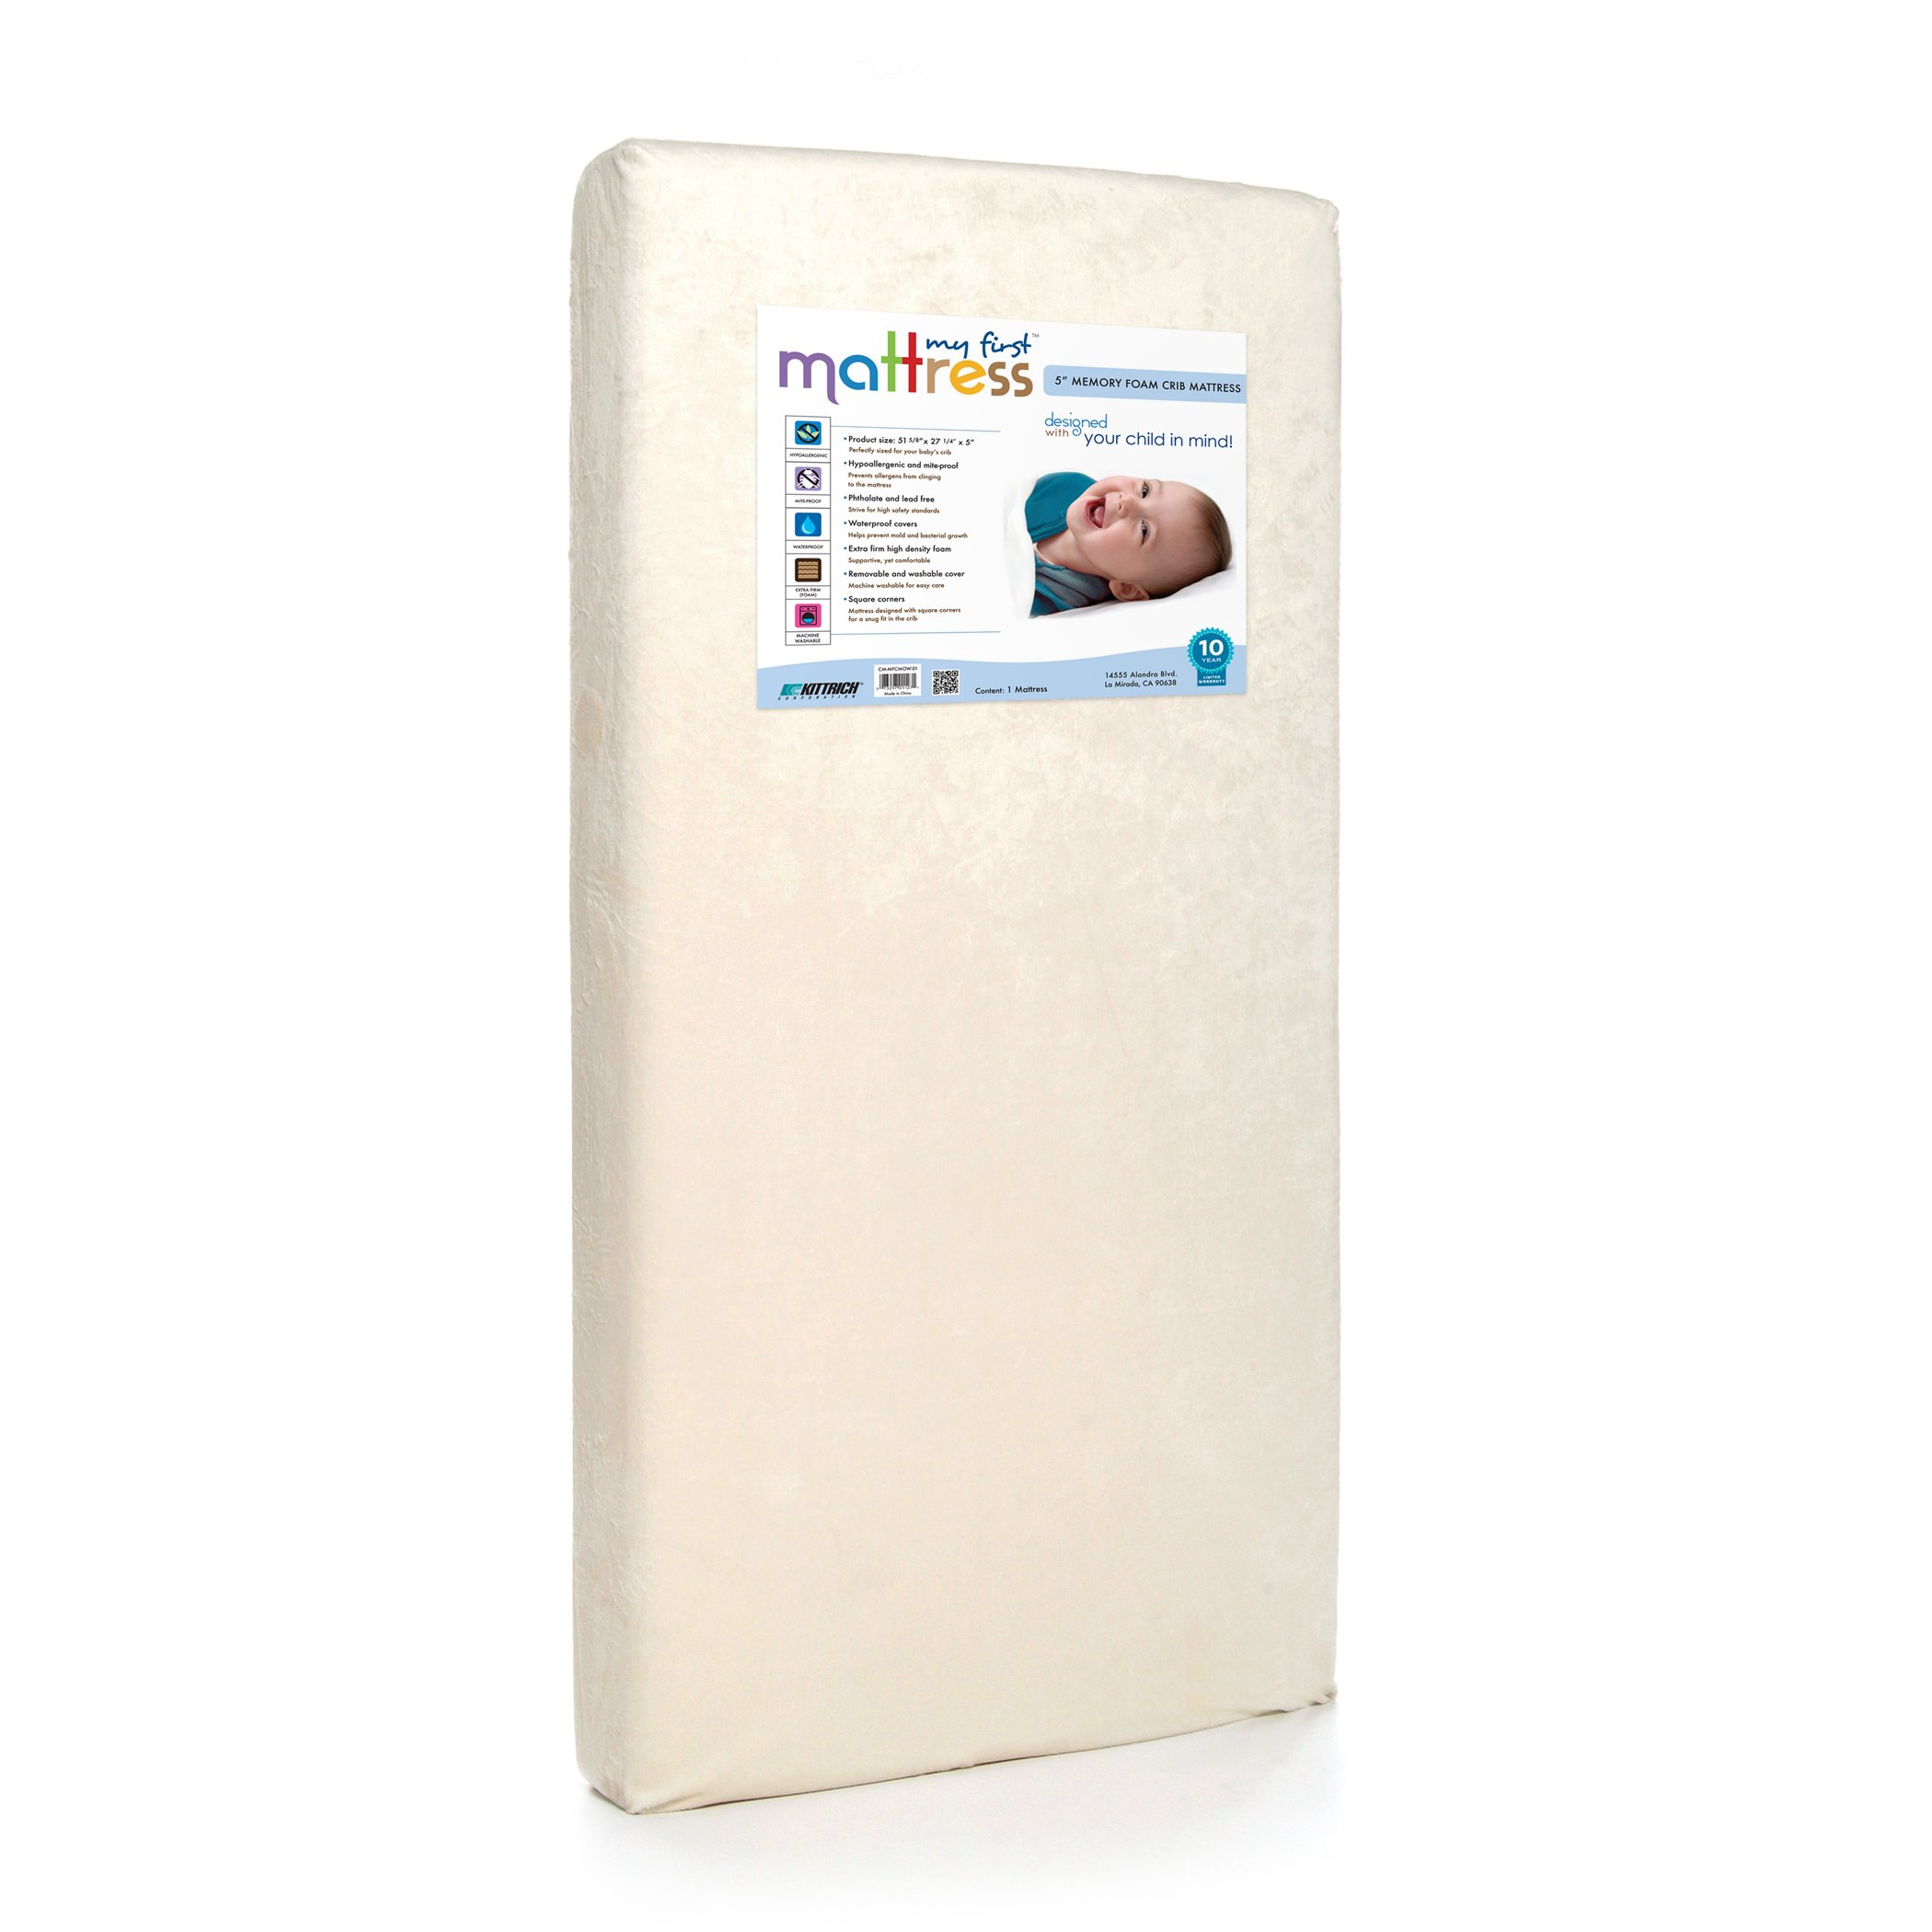 My First Crib Mattress, Breathable Memory Foam Crib Mattress with Removable Protective Waterproof Cover, Plush, and Hypoallergenic by My First Mattress